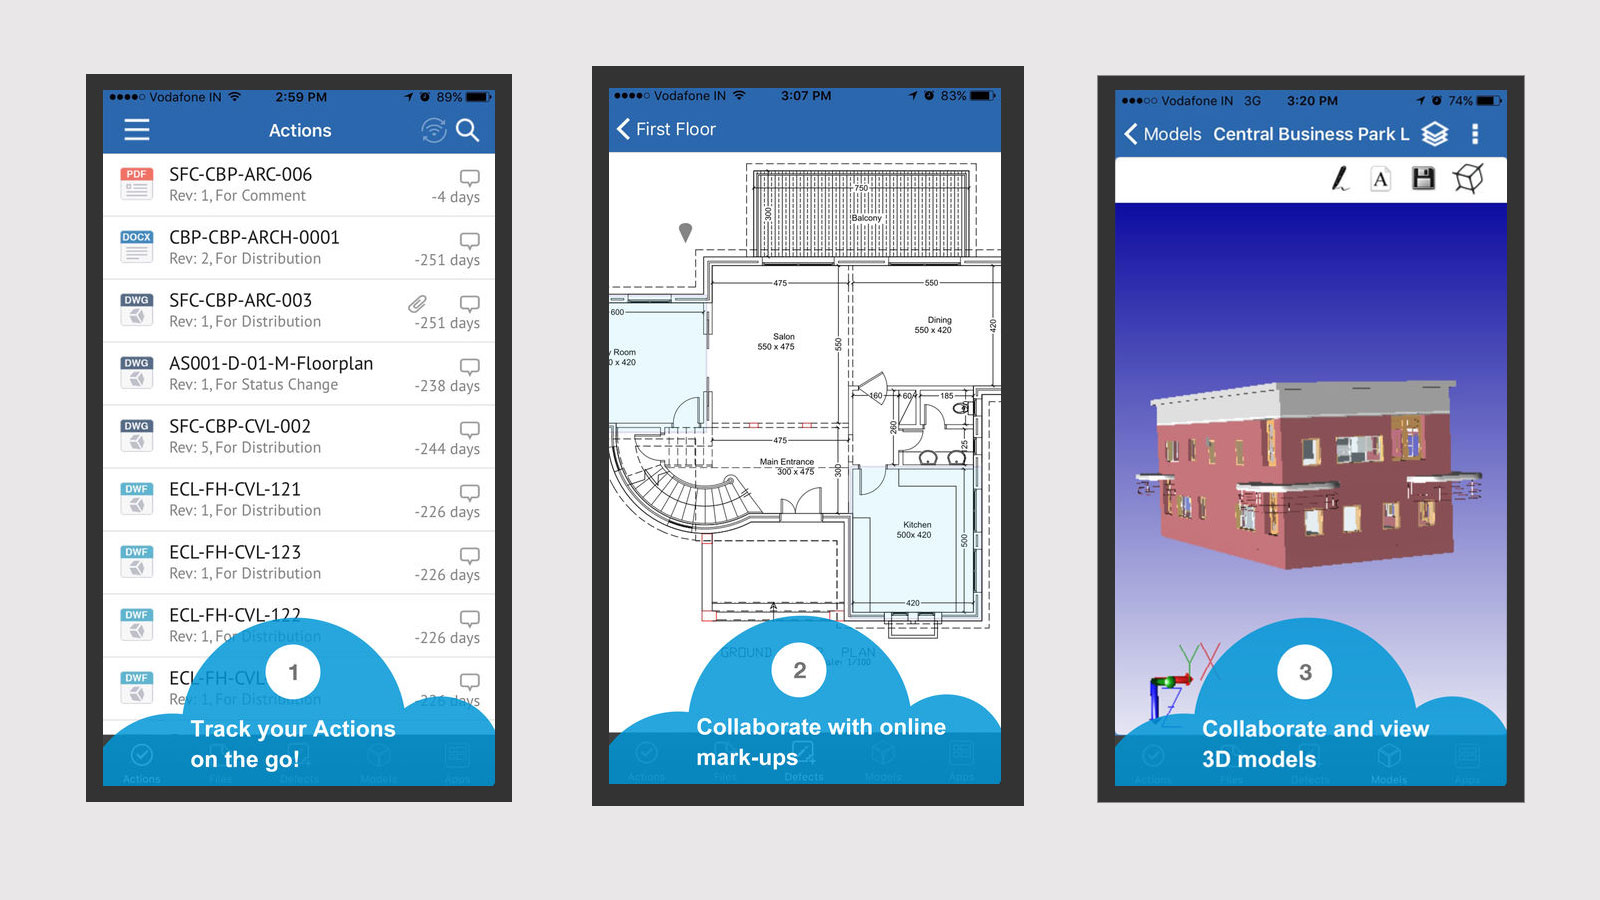 Join Asite for an interactive webinar showcasing the Adoddle Field App!